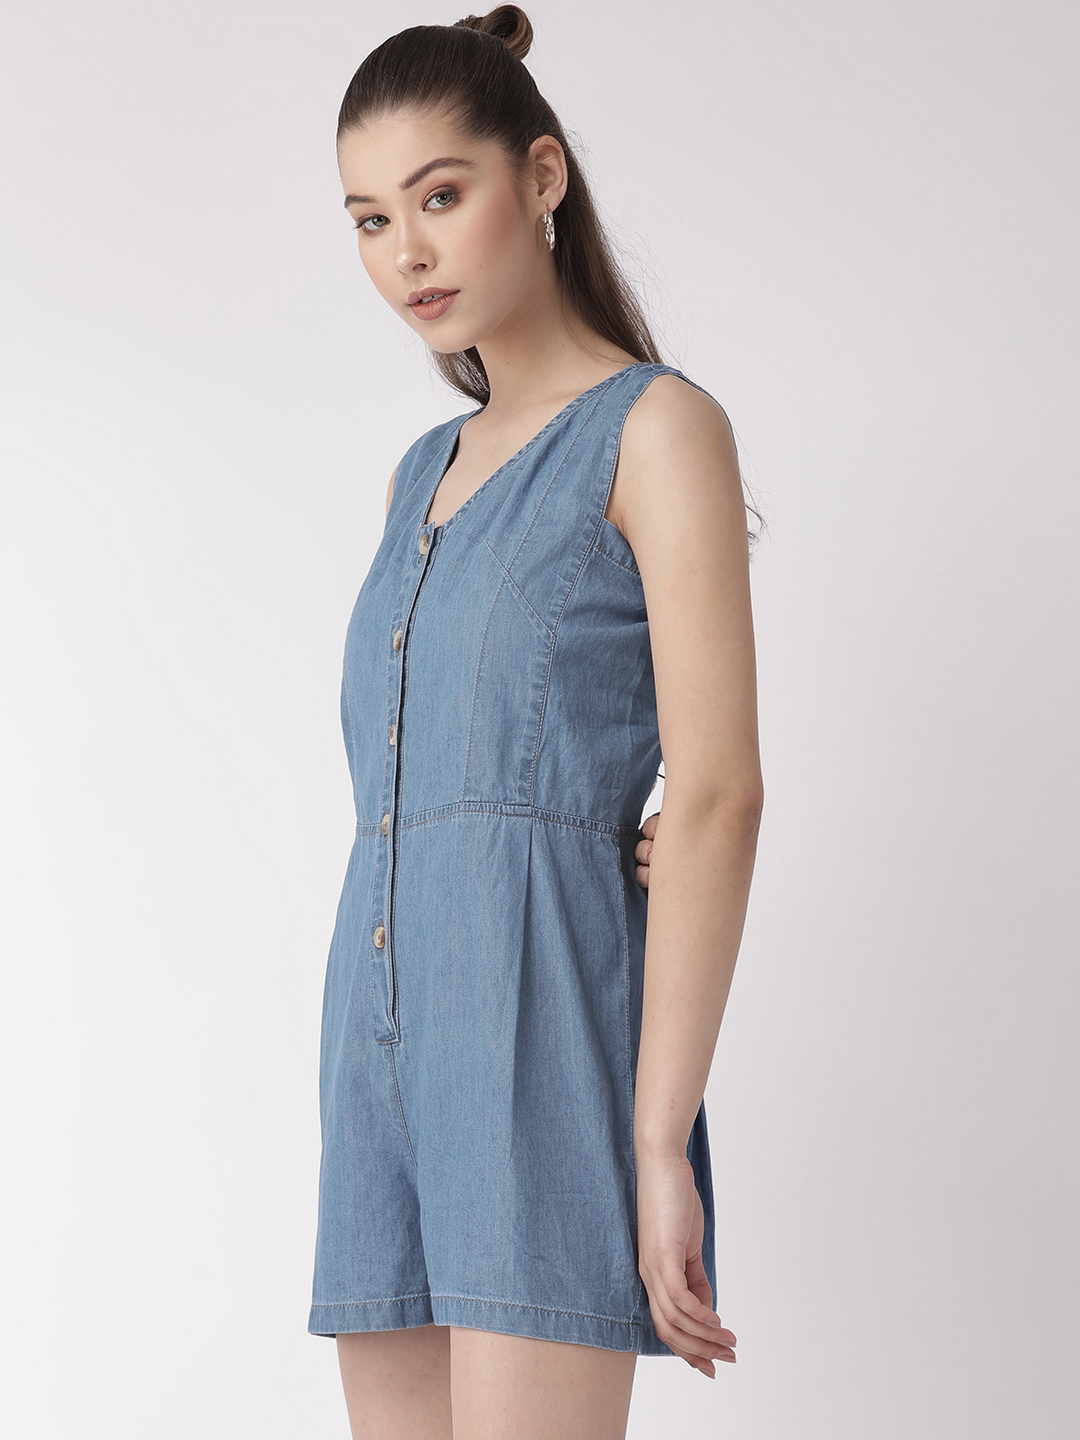 Jumpsuits-Style Me Comfort Denim Playsuit2